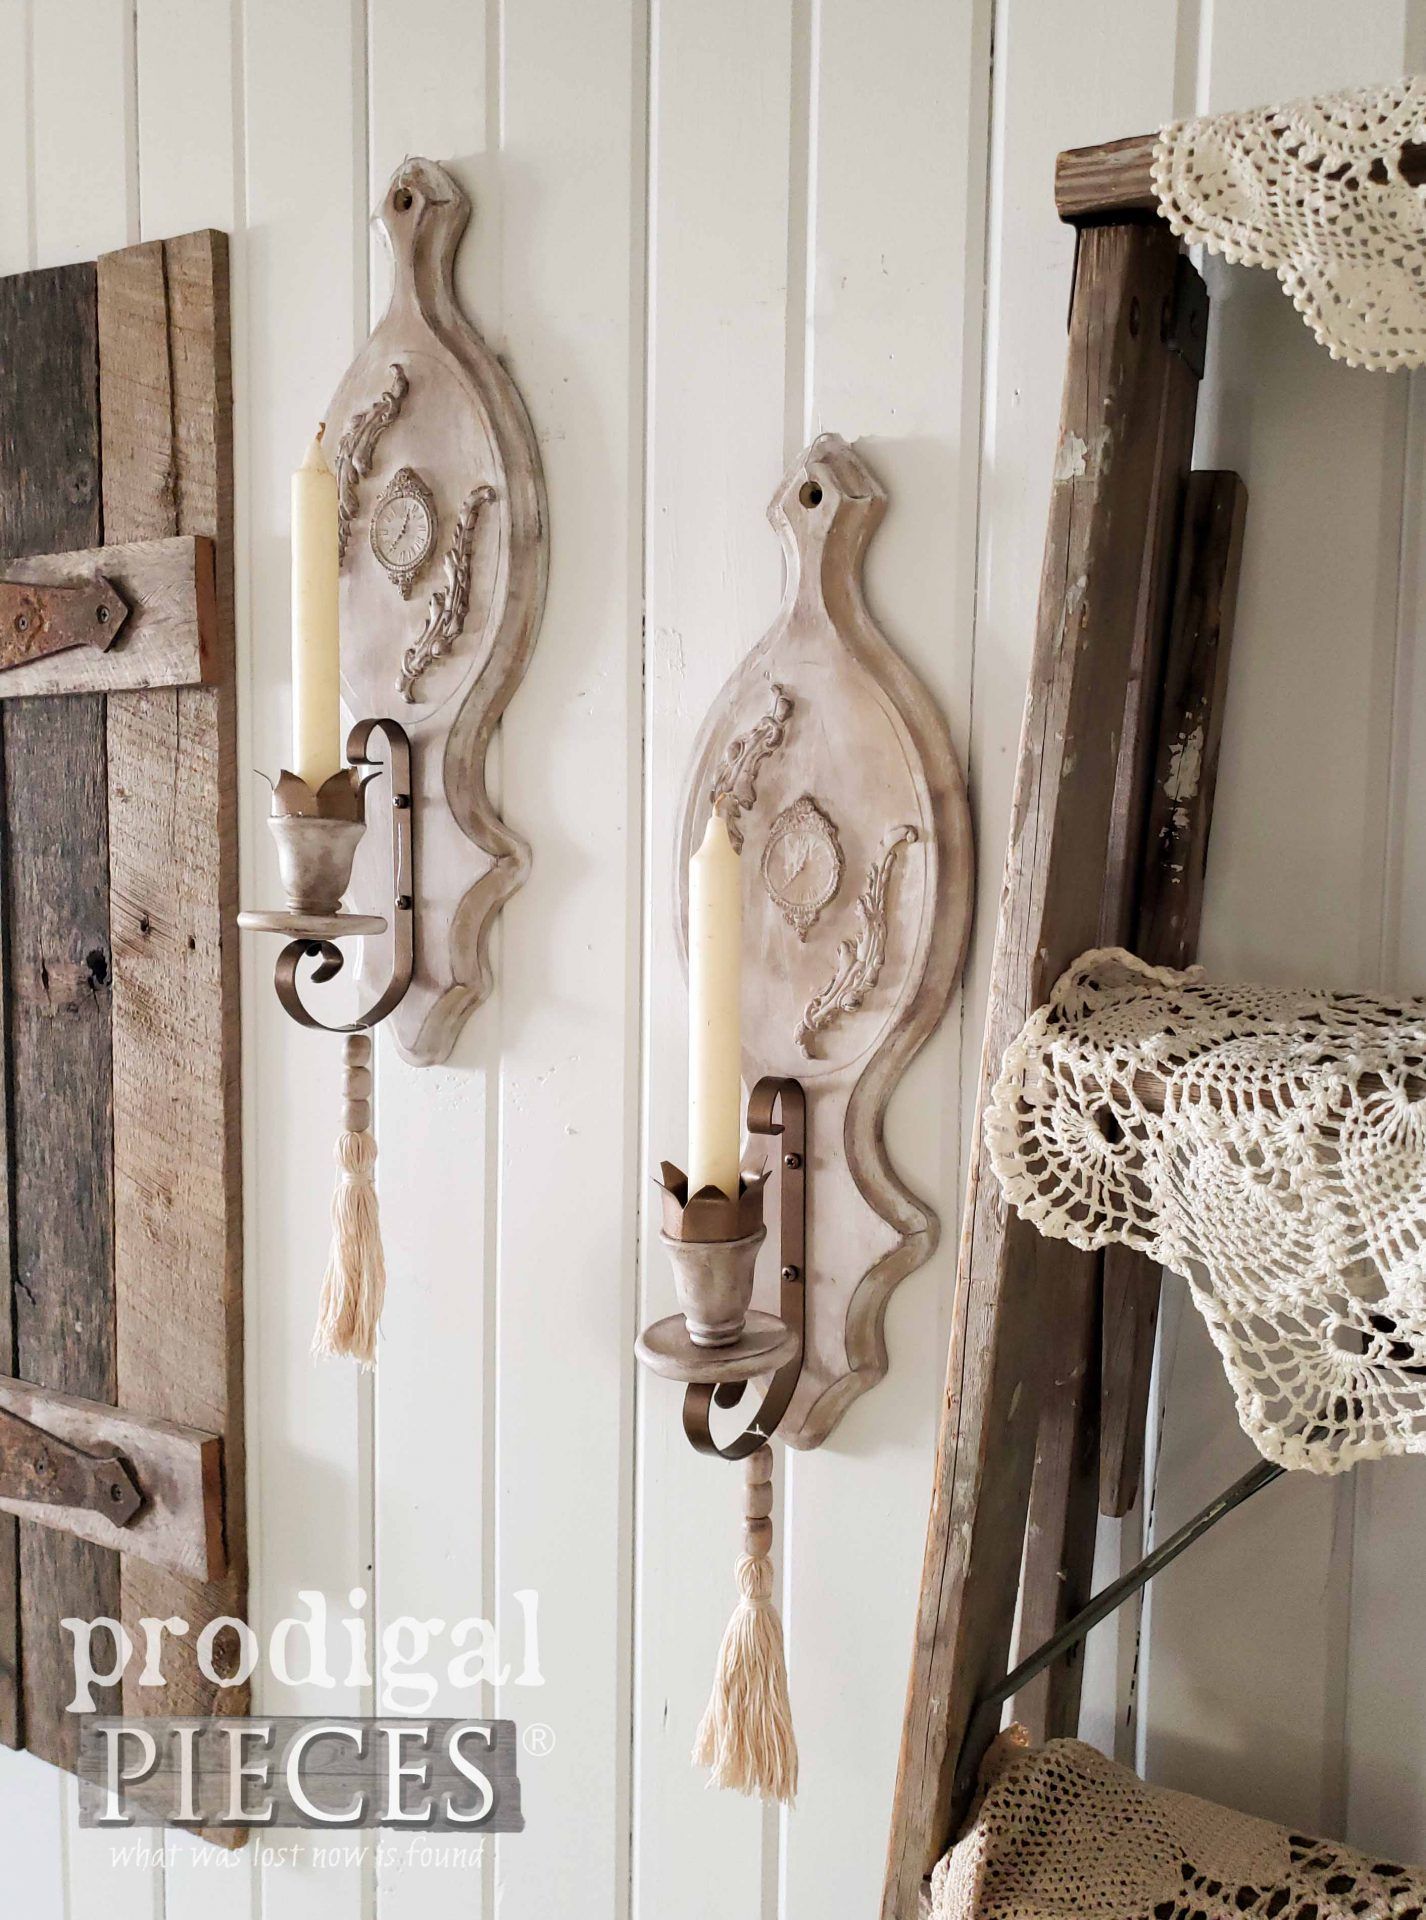 Pair of Farmhouse Chic Candle Sconces by Larissa of Prodigal Pieces | prodigalpieces.com #prodigalpieces #homedecor #diy #farmhouse #rusticchic